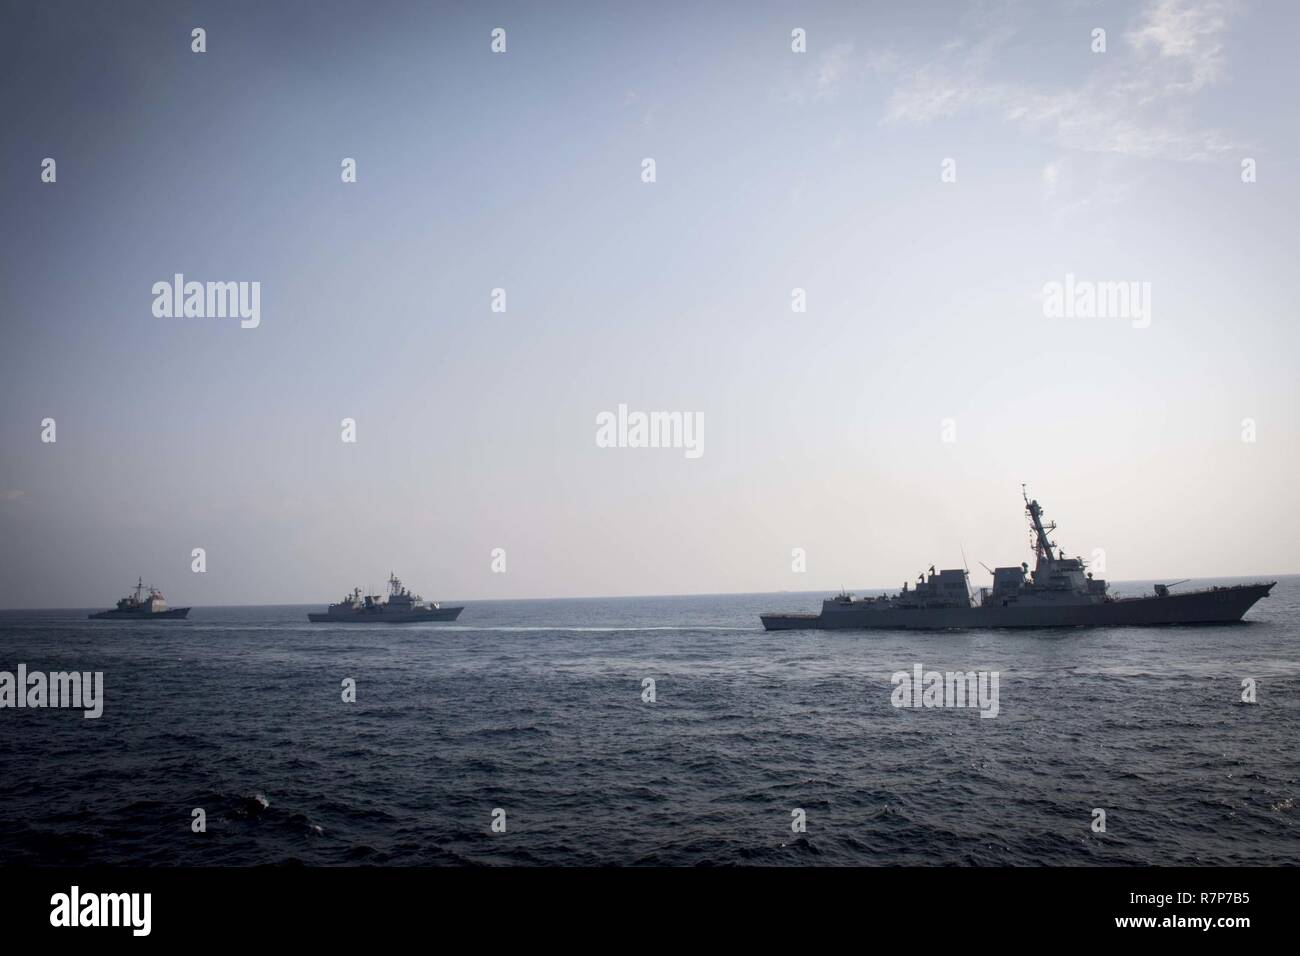 WATERS EAST OF THE KOREAN PENINSULA (March 22, 2017) The Arleigh Burke-class guided-missile destroyer USS Wayne E. Meyer (DDG 108), the Republic of Korea Navy destroyer ROKS Gwanggaeto the Great (DDH 971), and USS Mitscher (DDG 57) steam behind USS Stethem (DDG 63) as the ships participate in surface maneuvers with several other U.S. and Republic of Korea Navy ships and submarines during Foal Eagle (FE) 17. FE 17 is a series of annual training events designed to increase readiness to defend the ROK, protect the region, and maintain stability in the Korean Peninsula. - Stock Image